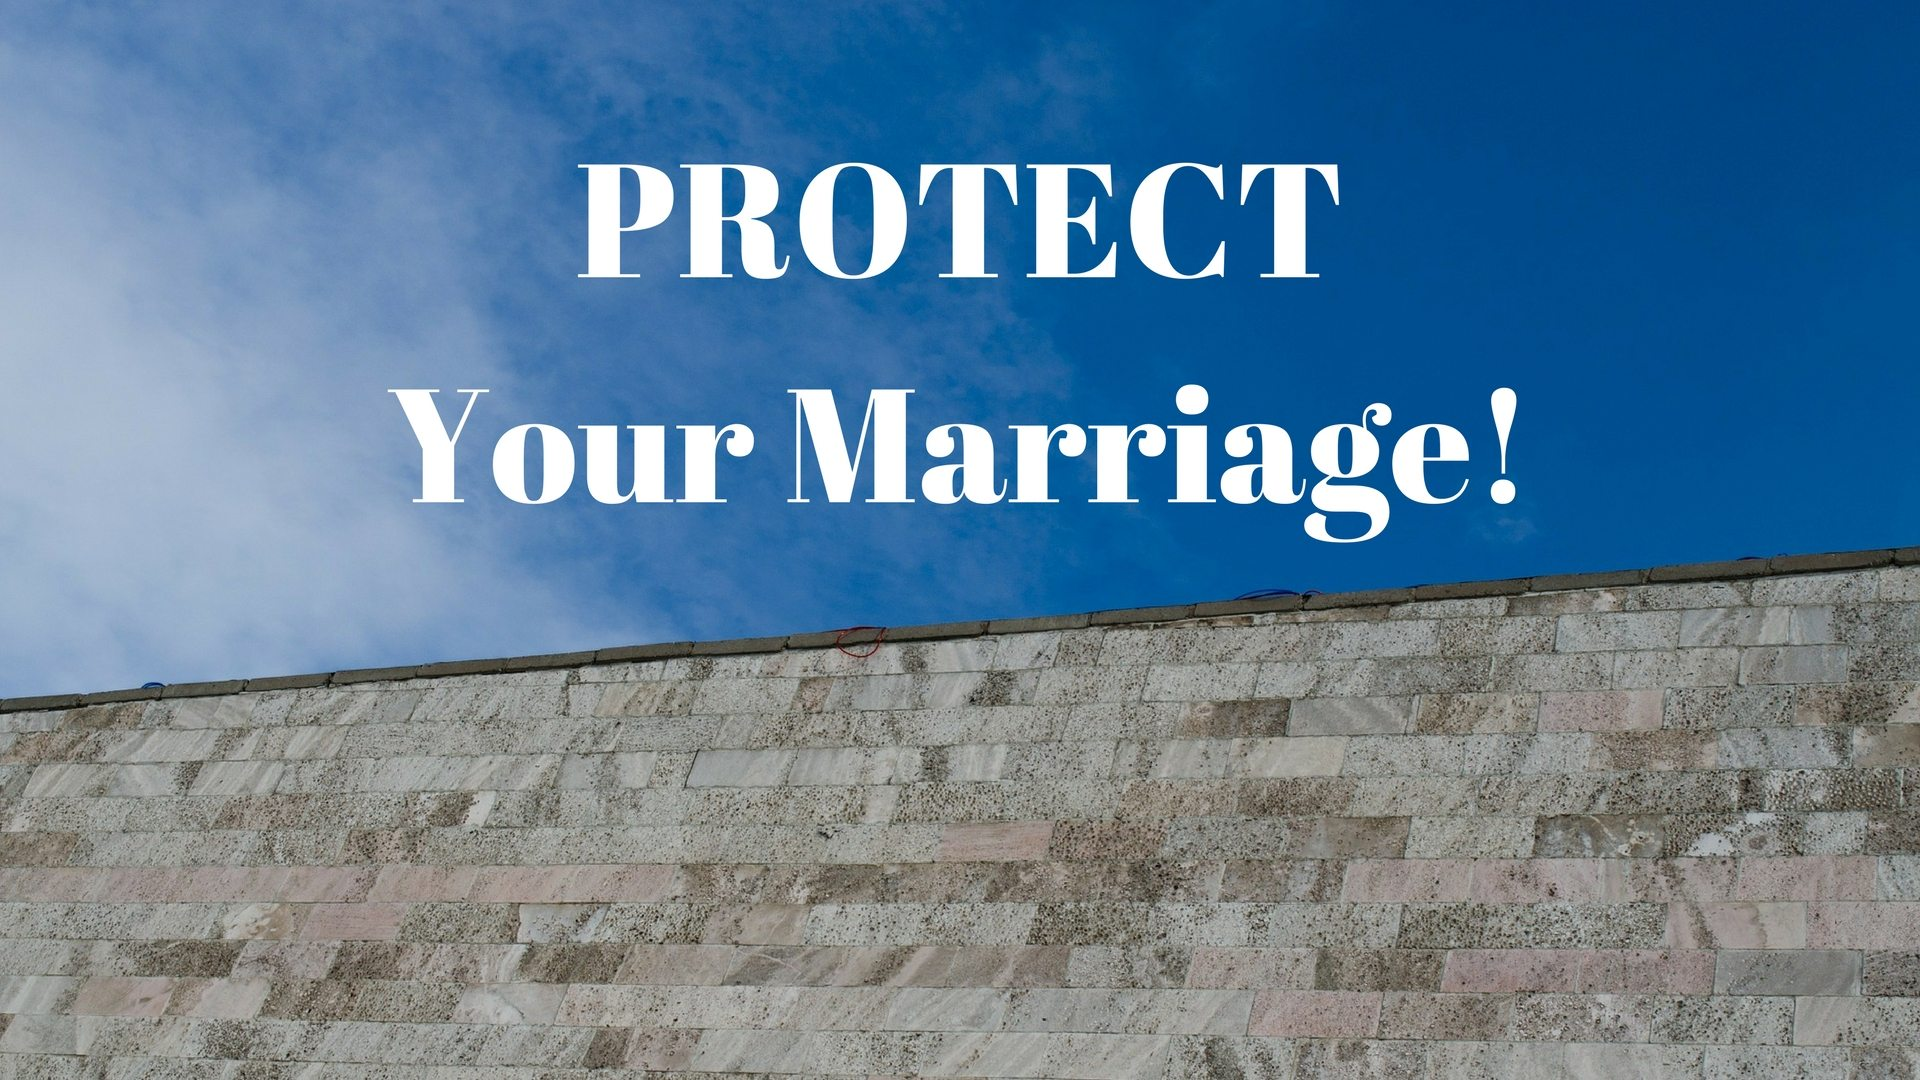 PROTECT Your Marriage - Pixabay - Canva